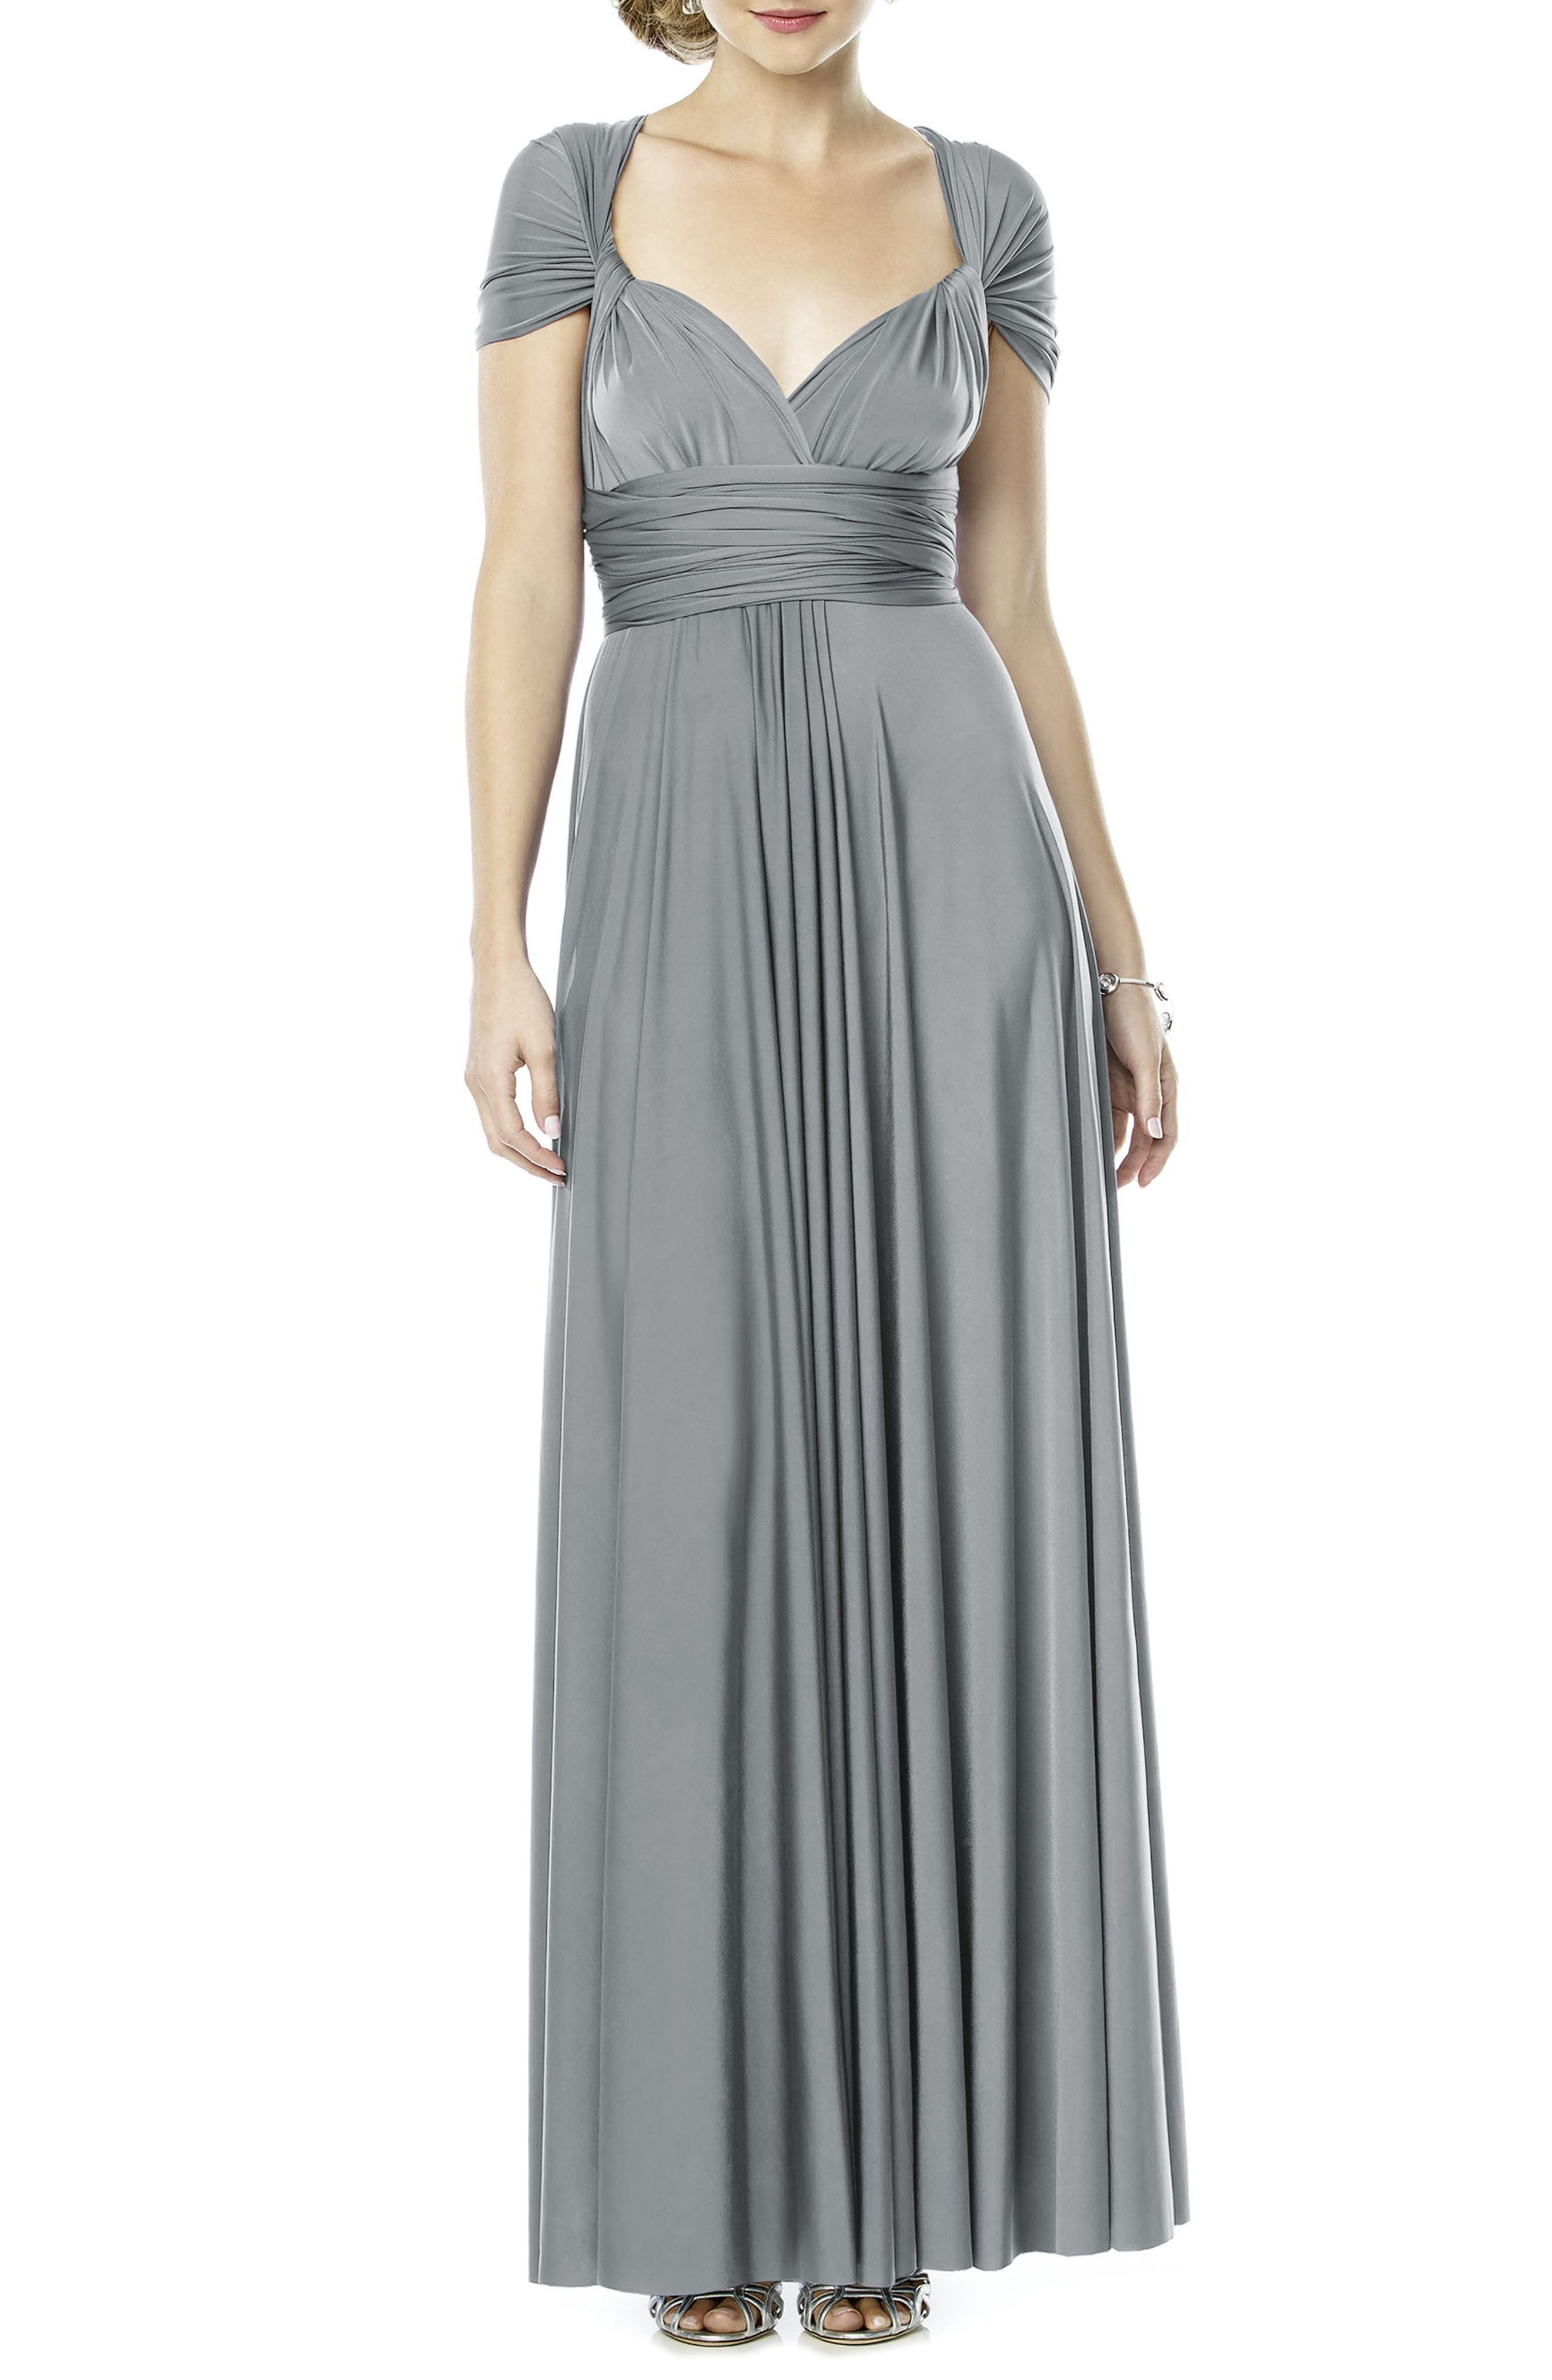 DESSY COLLECTION,                             Convertible Wrap Tie Surplice Jersey Gown,                             Alternate thumbnail 2, color,                             033